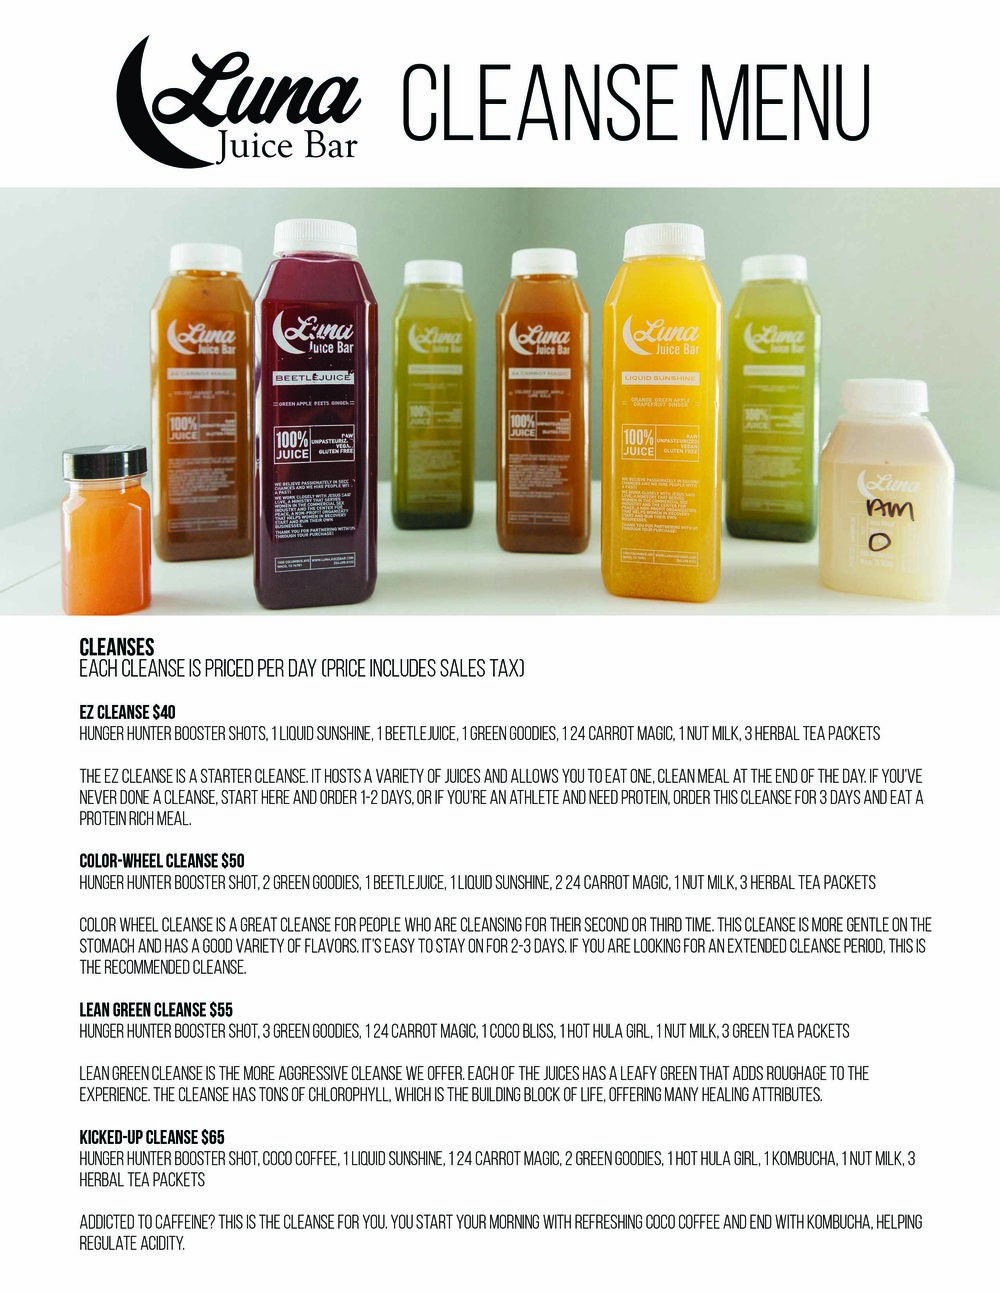 Luna Juice Cleanse Menu 01 (1).jpg